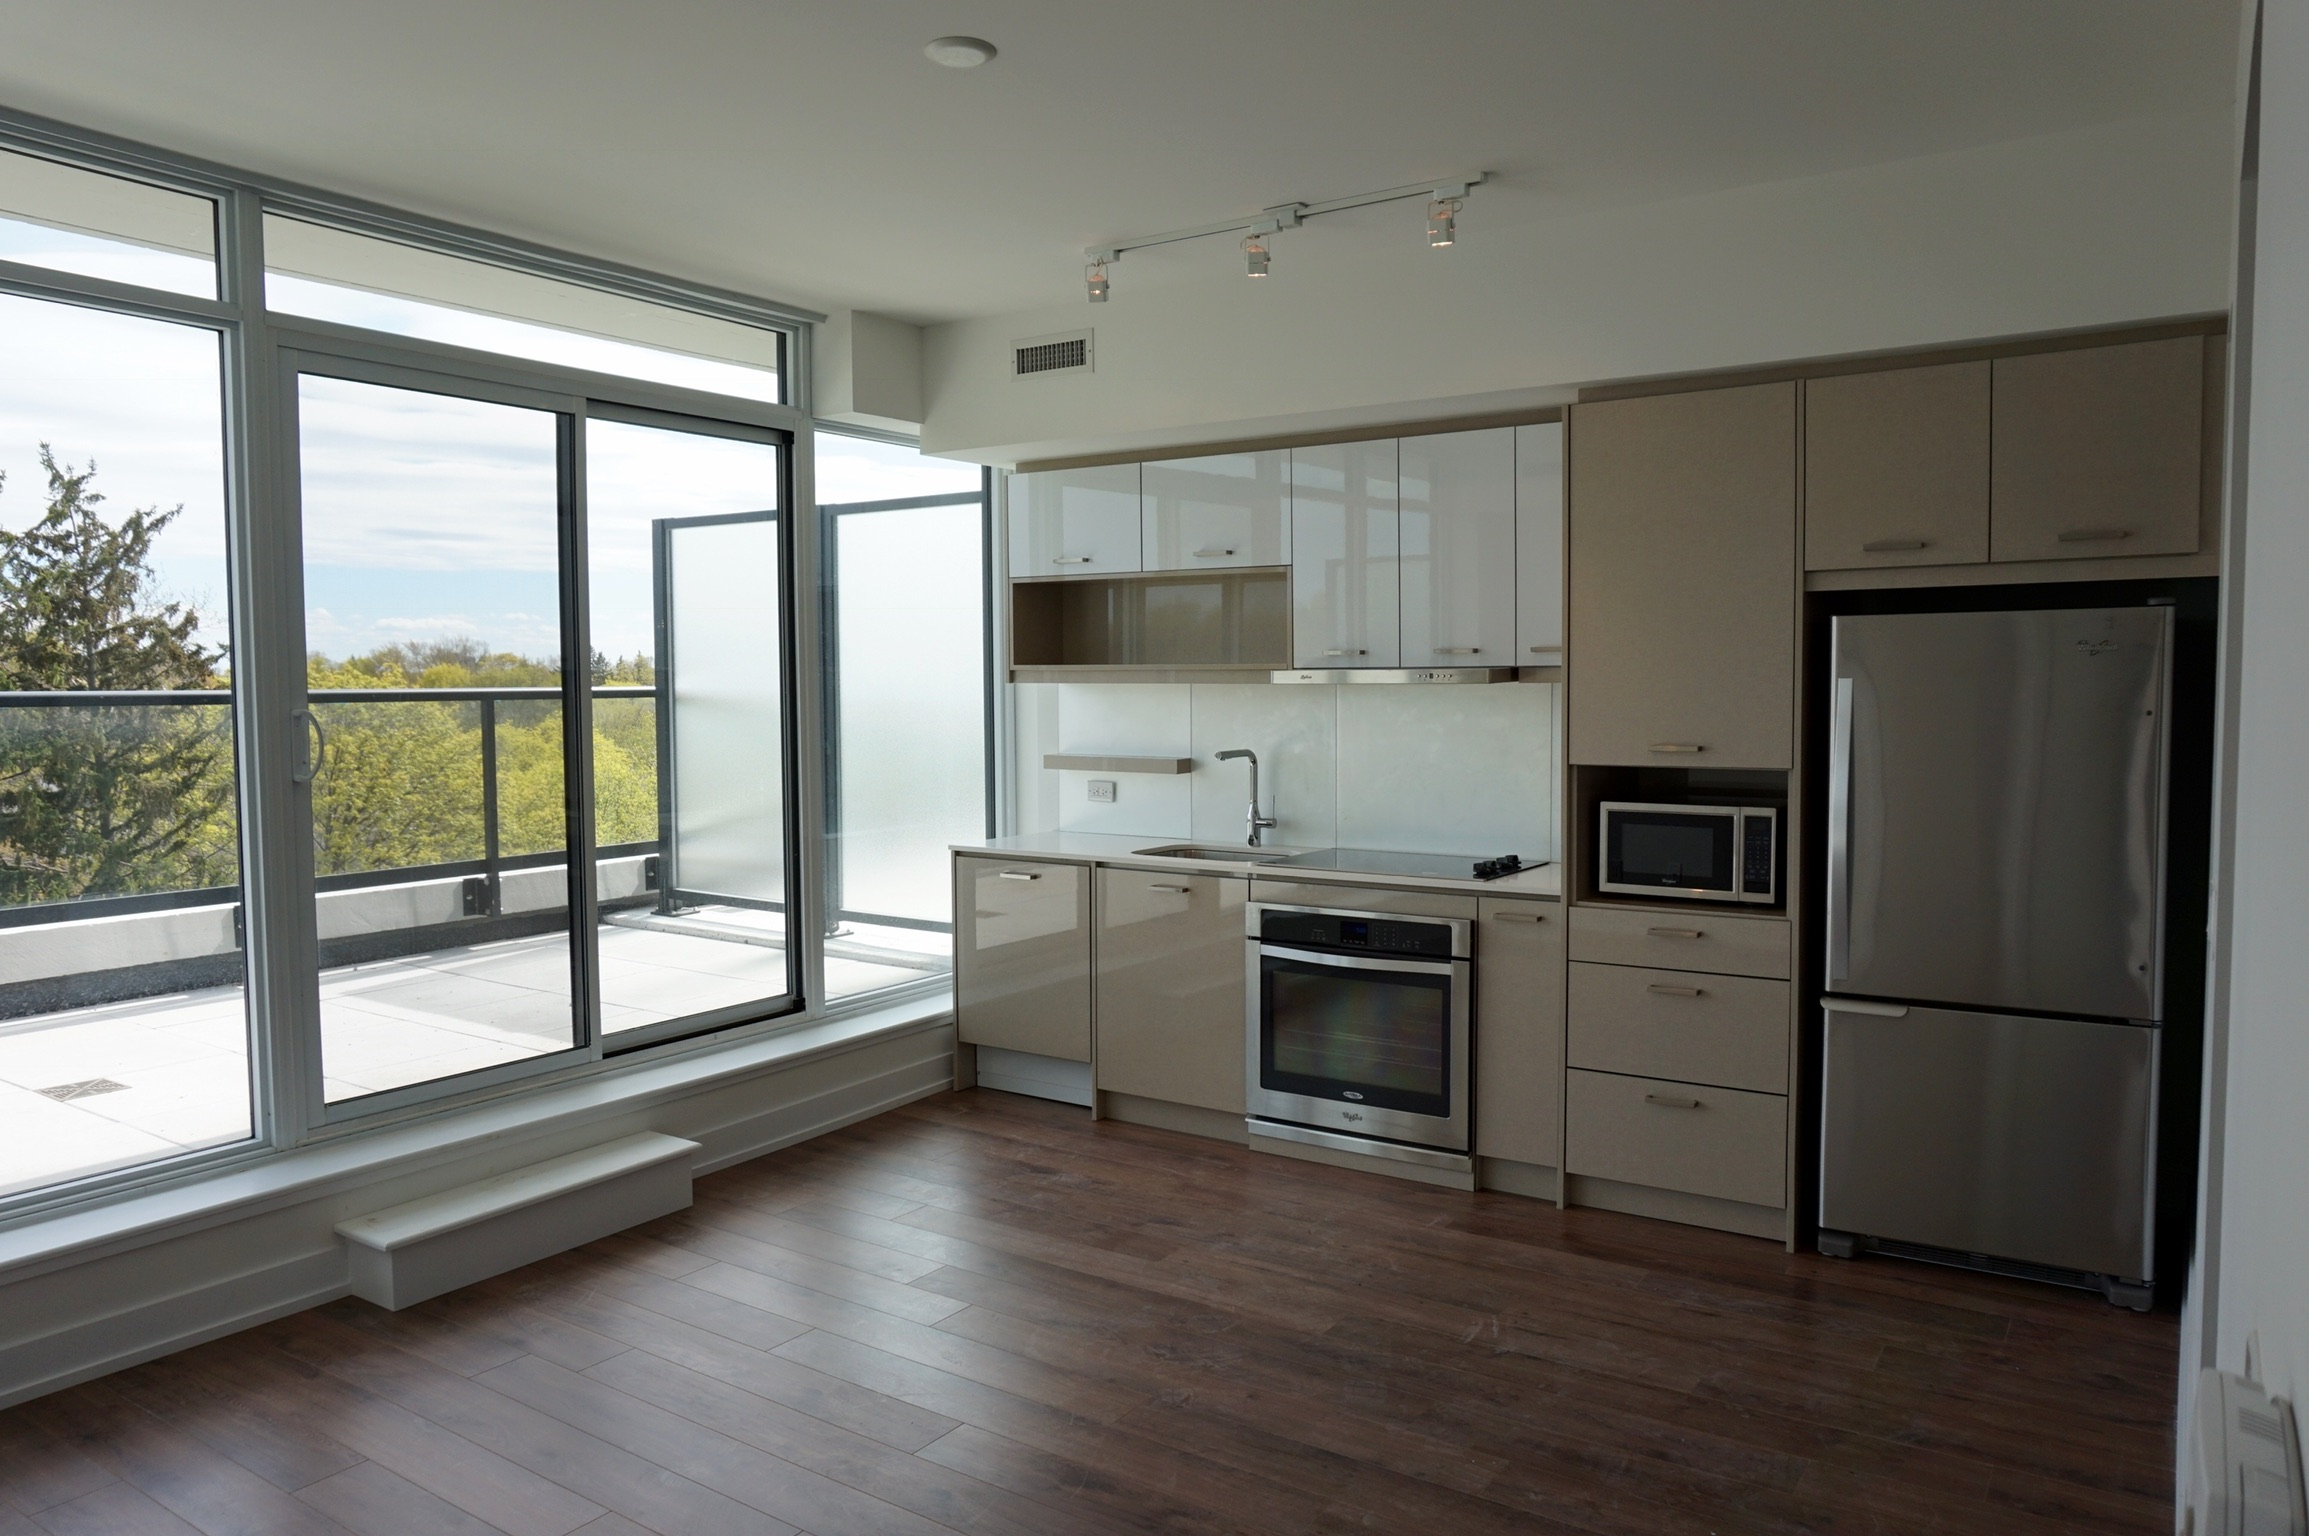 stunning 2 bedroom 2 bath house plans.  Brand New Stunning 2 Bedroom Condo For Sale Never Lived In